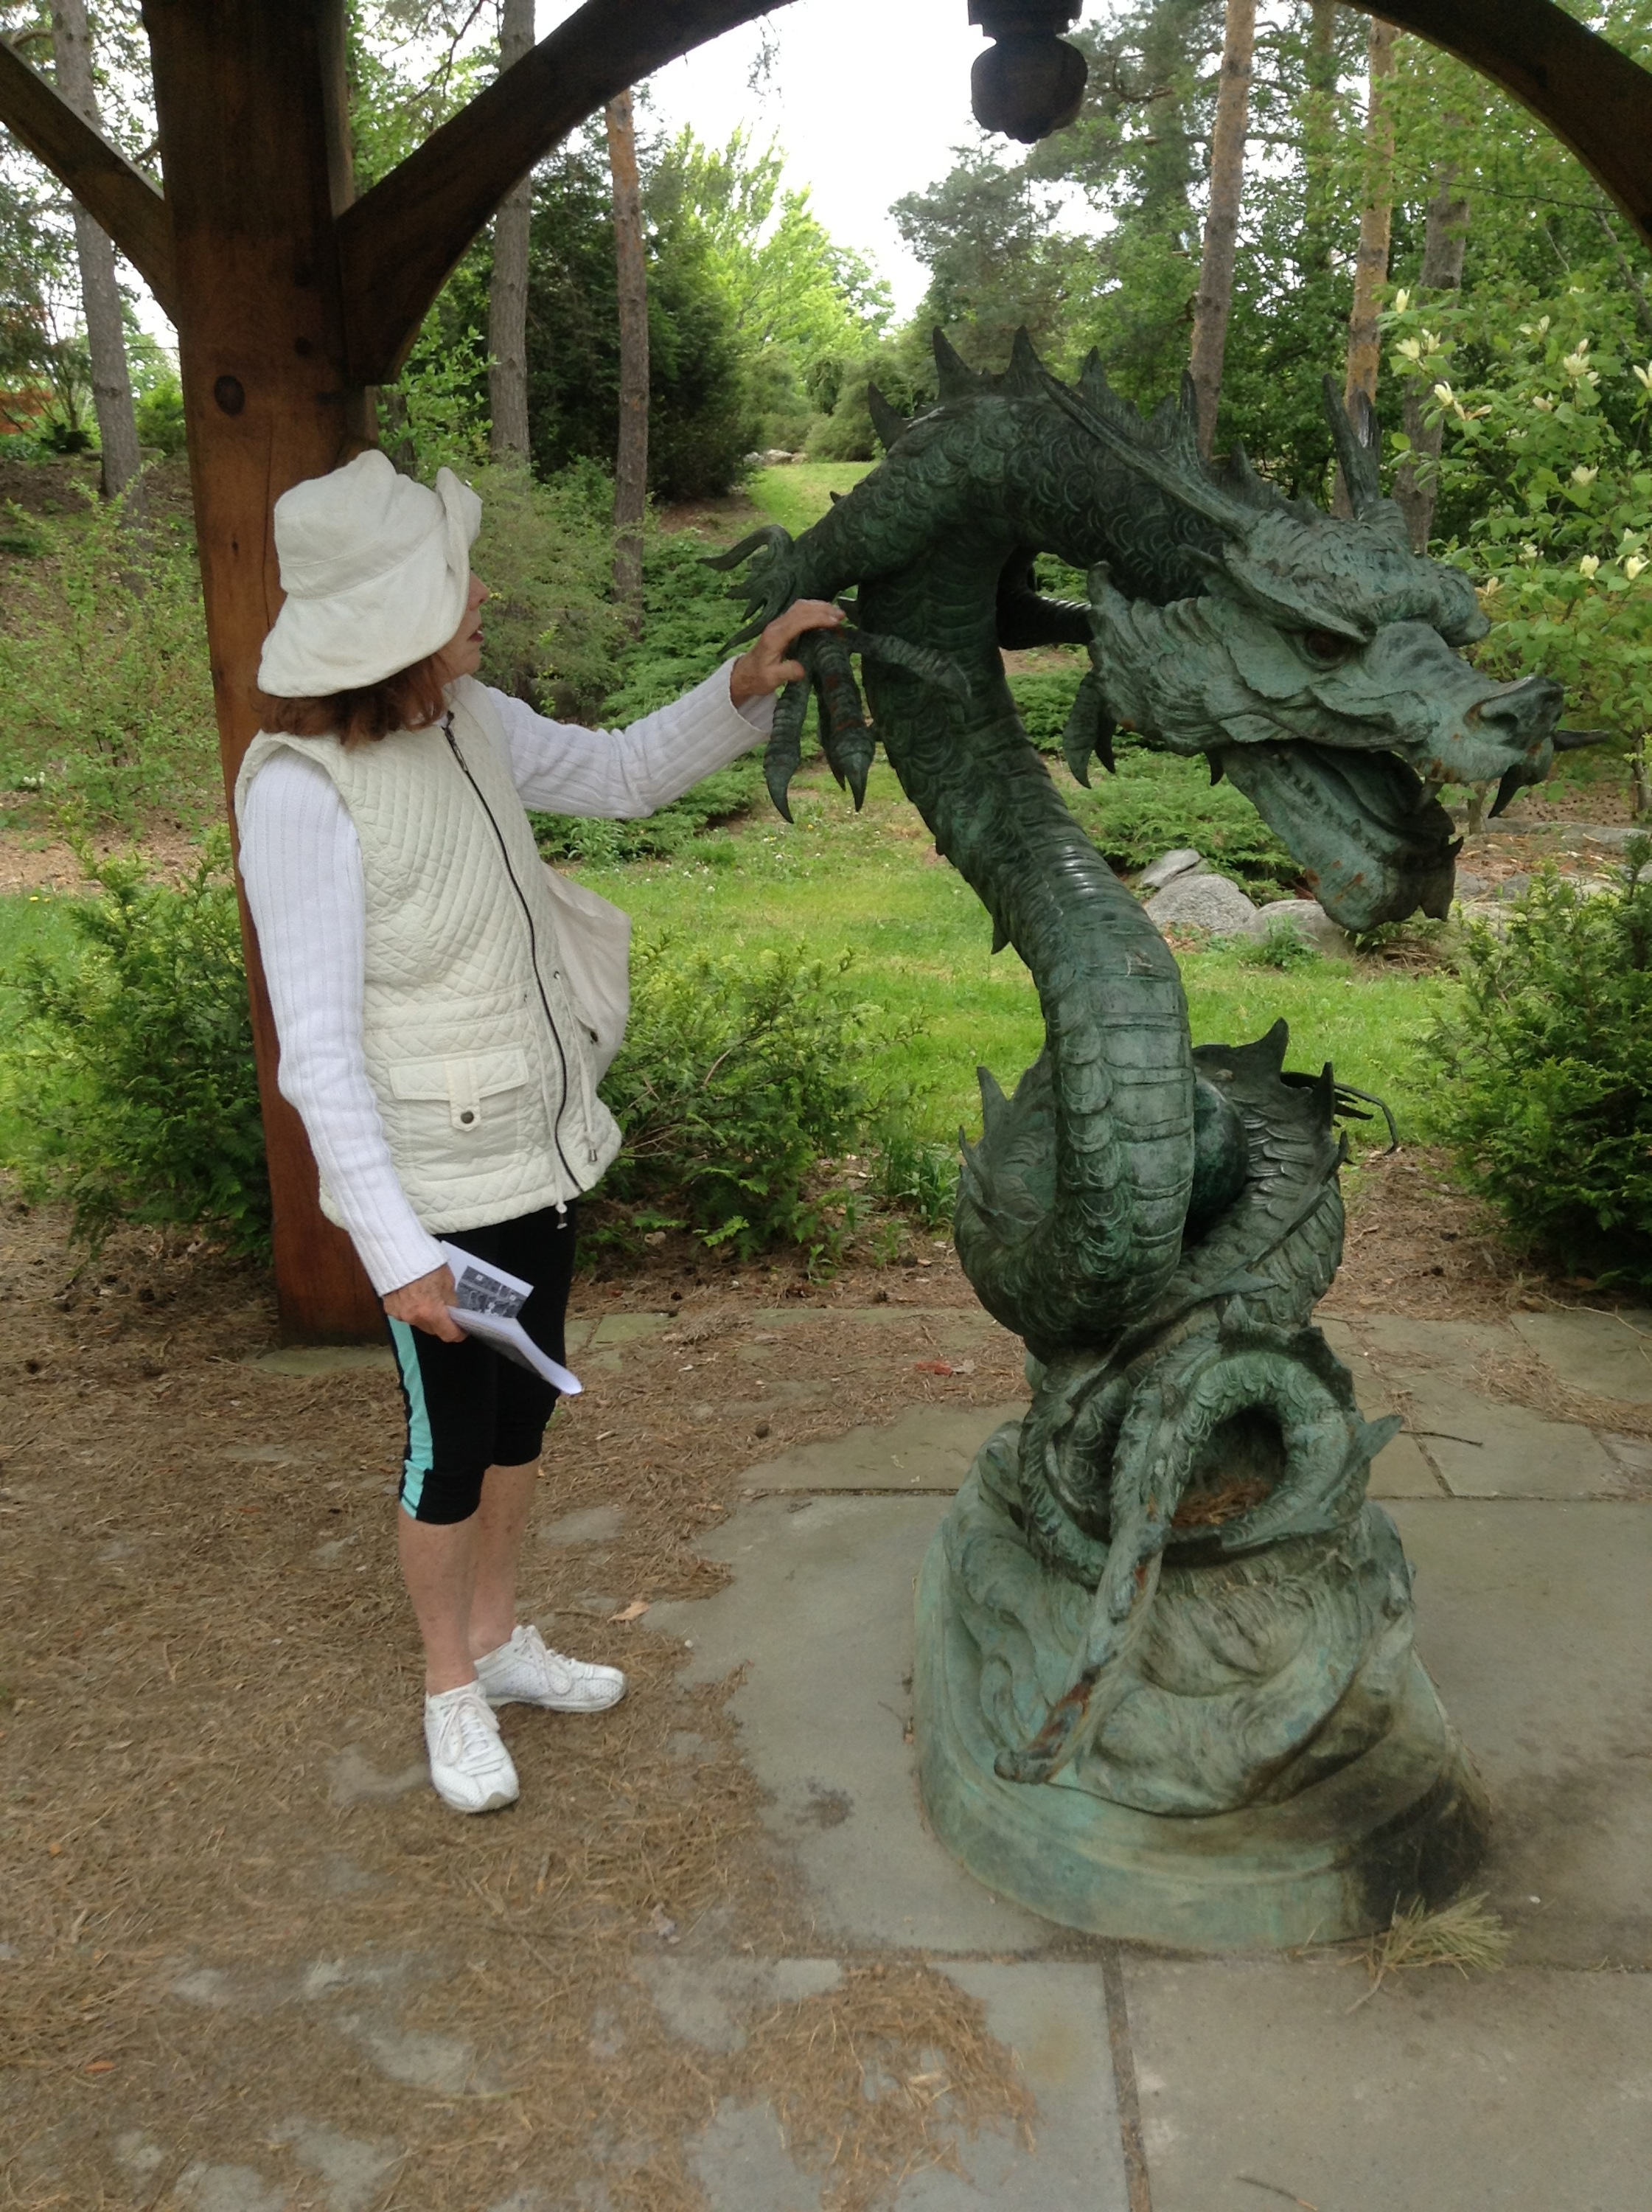 Making the acquaintance of a sculpture